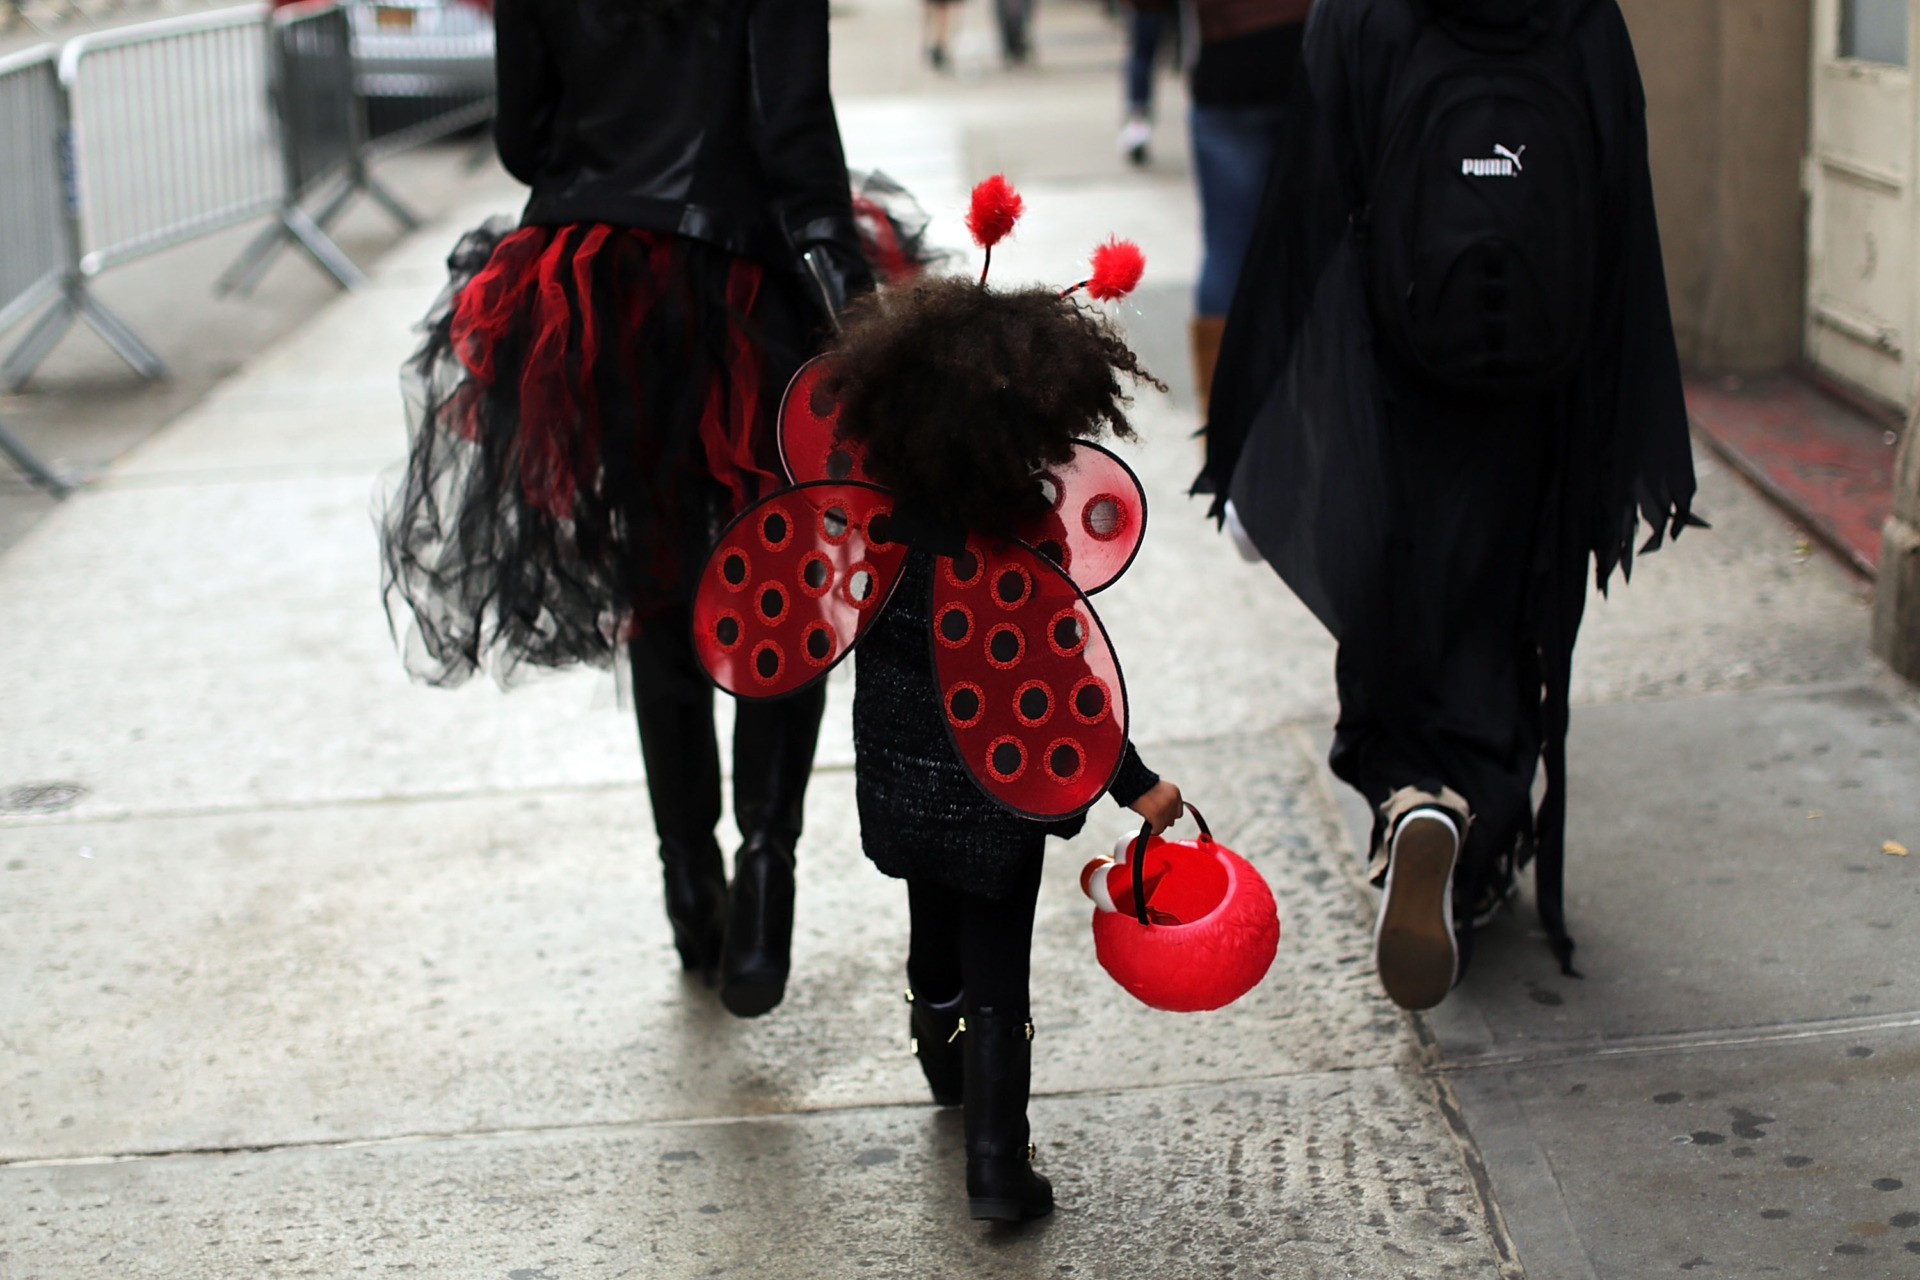 A child walks down a street in a Halloween costume on October 31, 2015 in New York City. Thousands of people are descending on New York City's Greenwich Village as it prepares to host the 42nd Annual Village Halloween Parade which has become one of the nation's largest. (Photo by Spencer Platt/Getty Images)